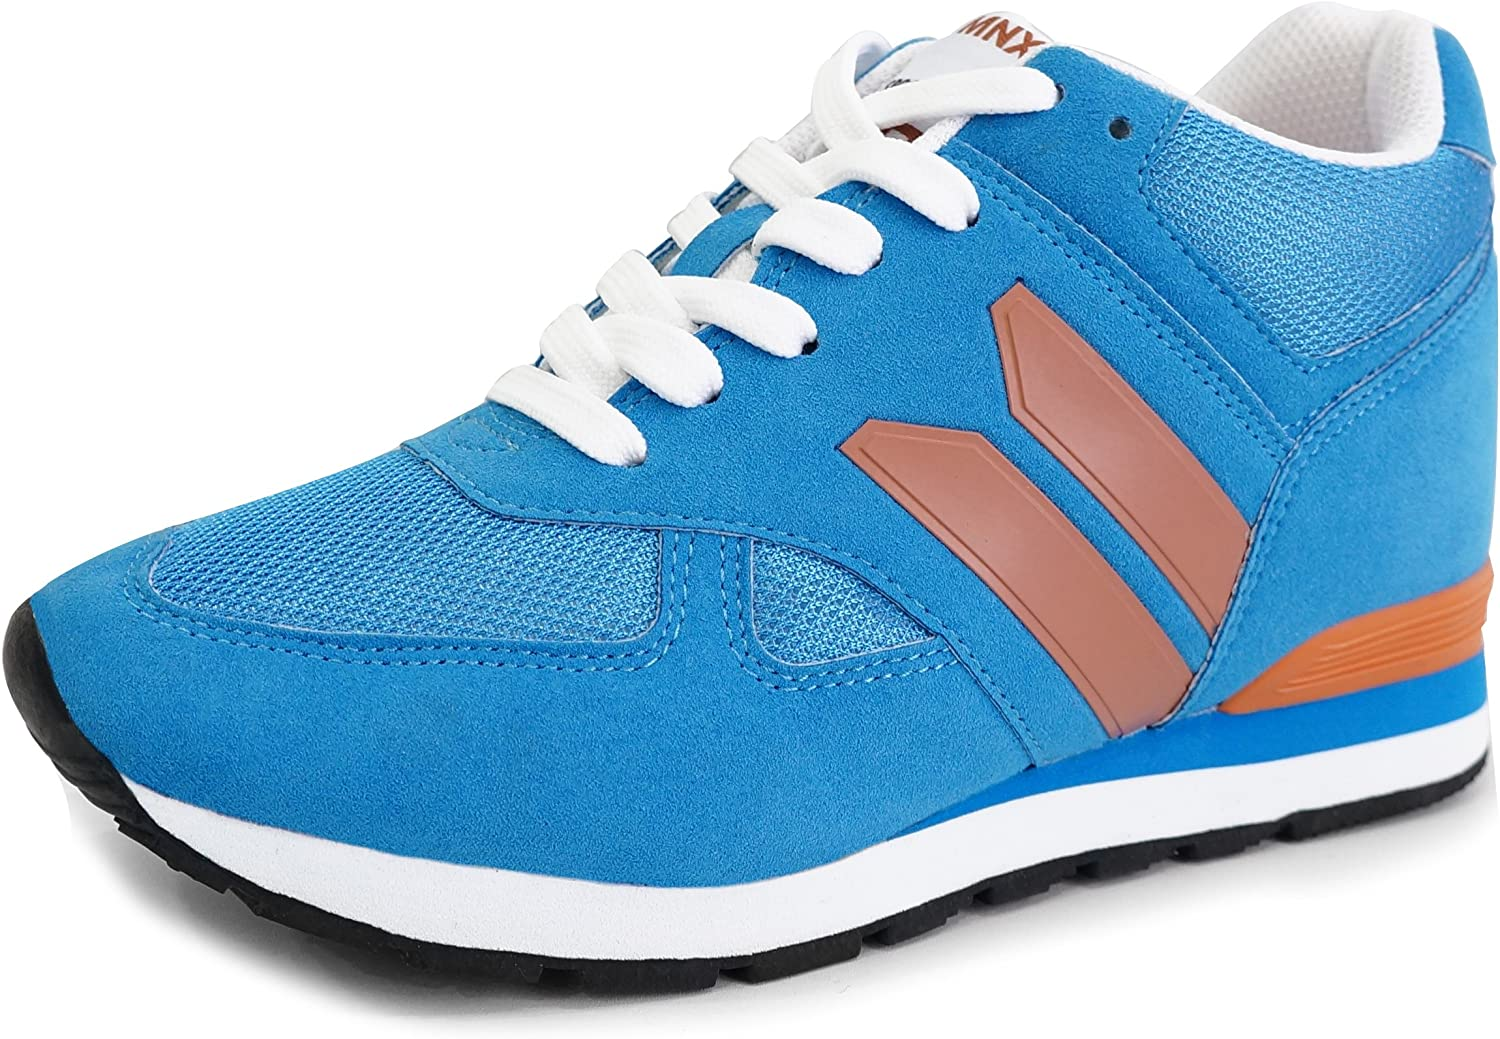 MNX15 Women's Elevator shoes Height Increase 3.5  Corby bluee